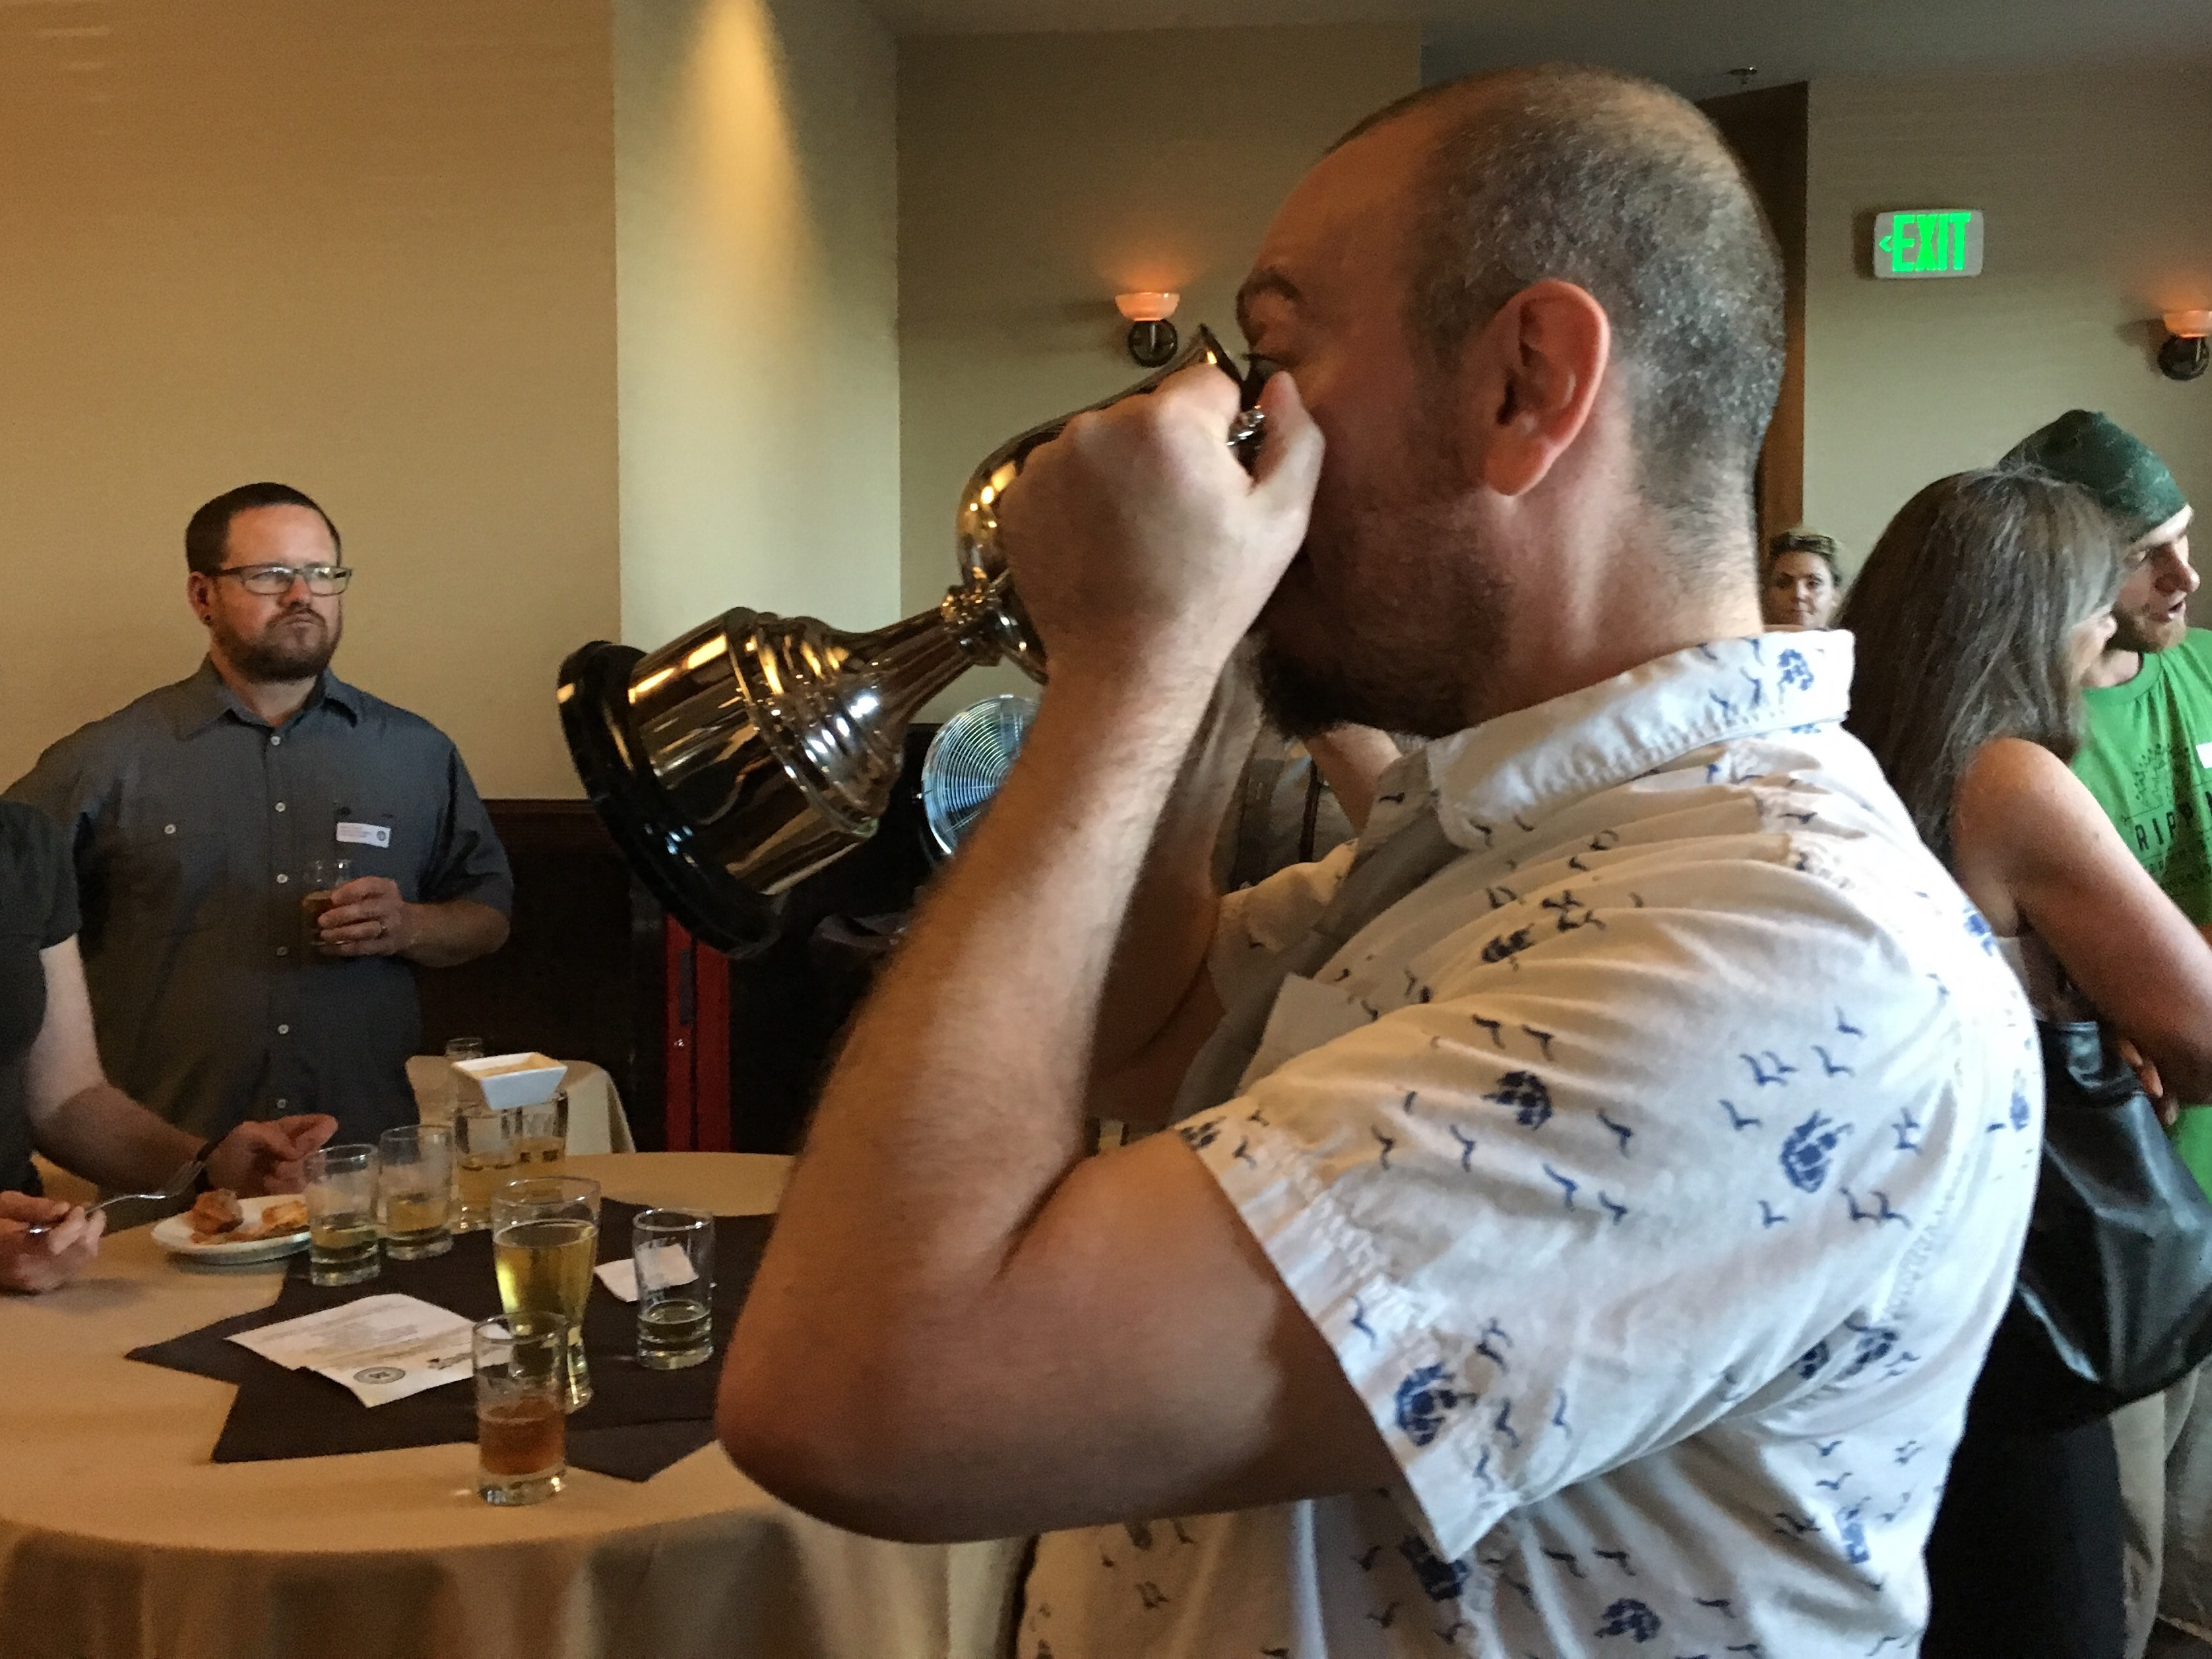 Jim Bonomo drinking from the Portland International Cider Cup.